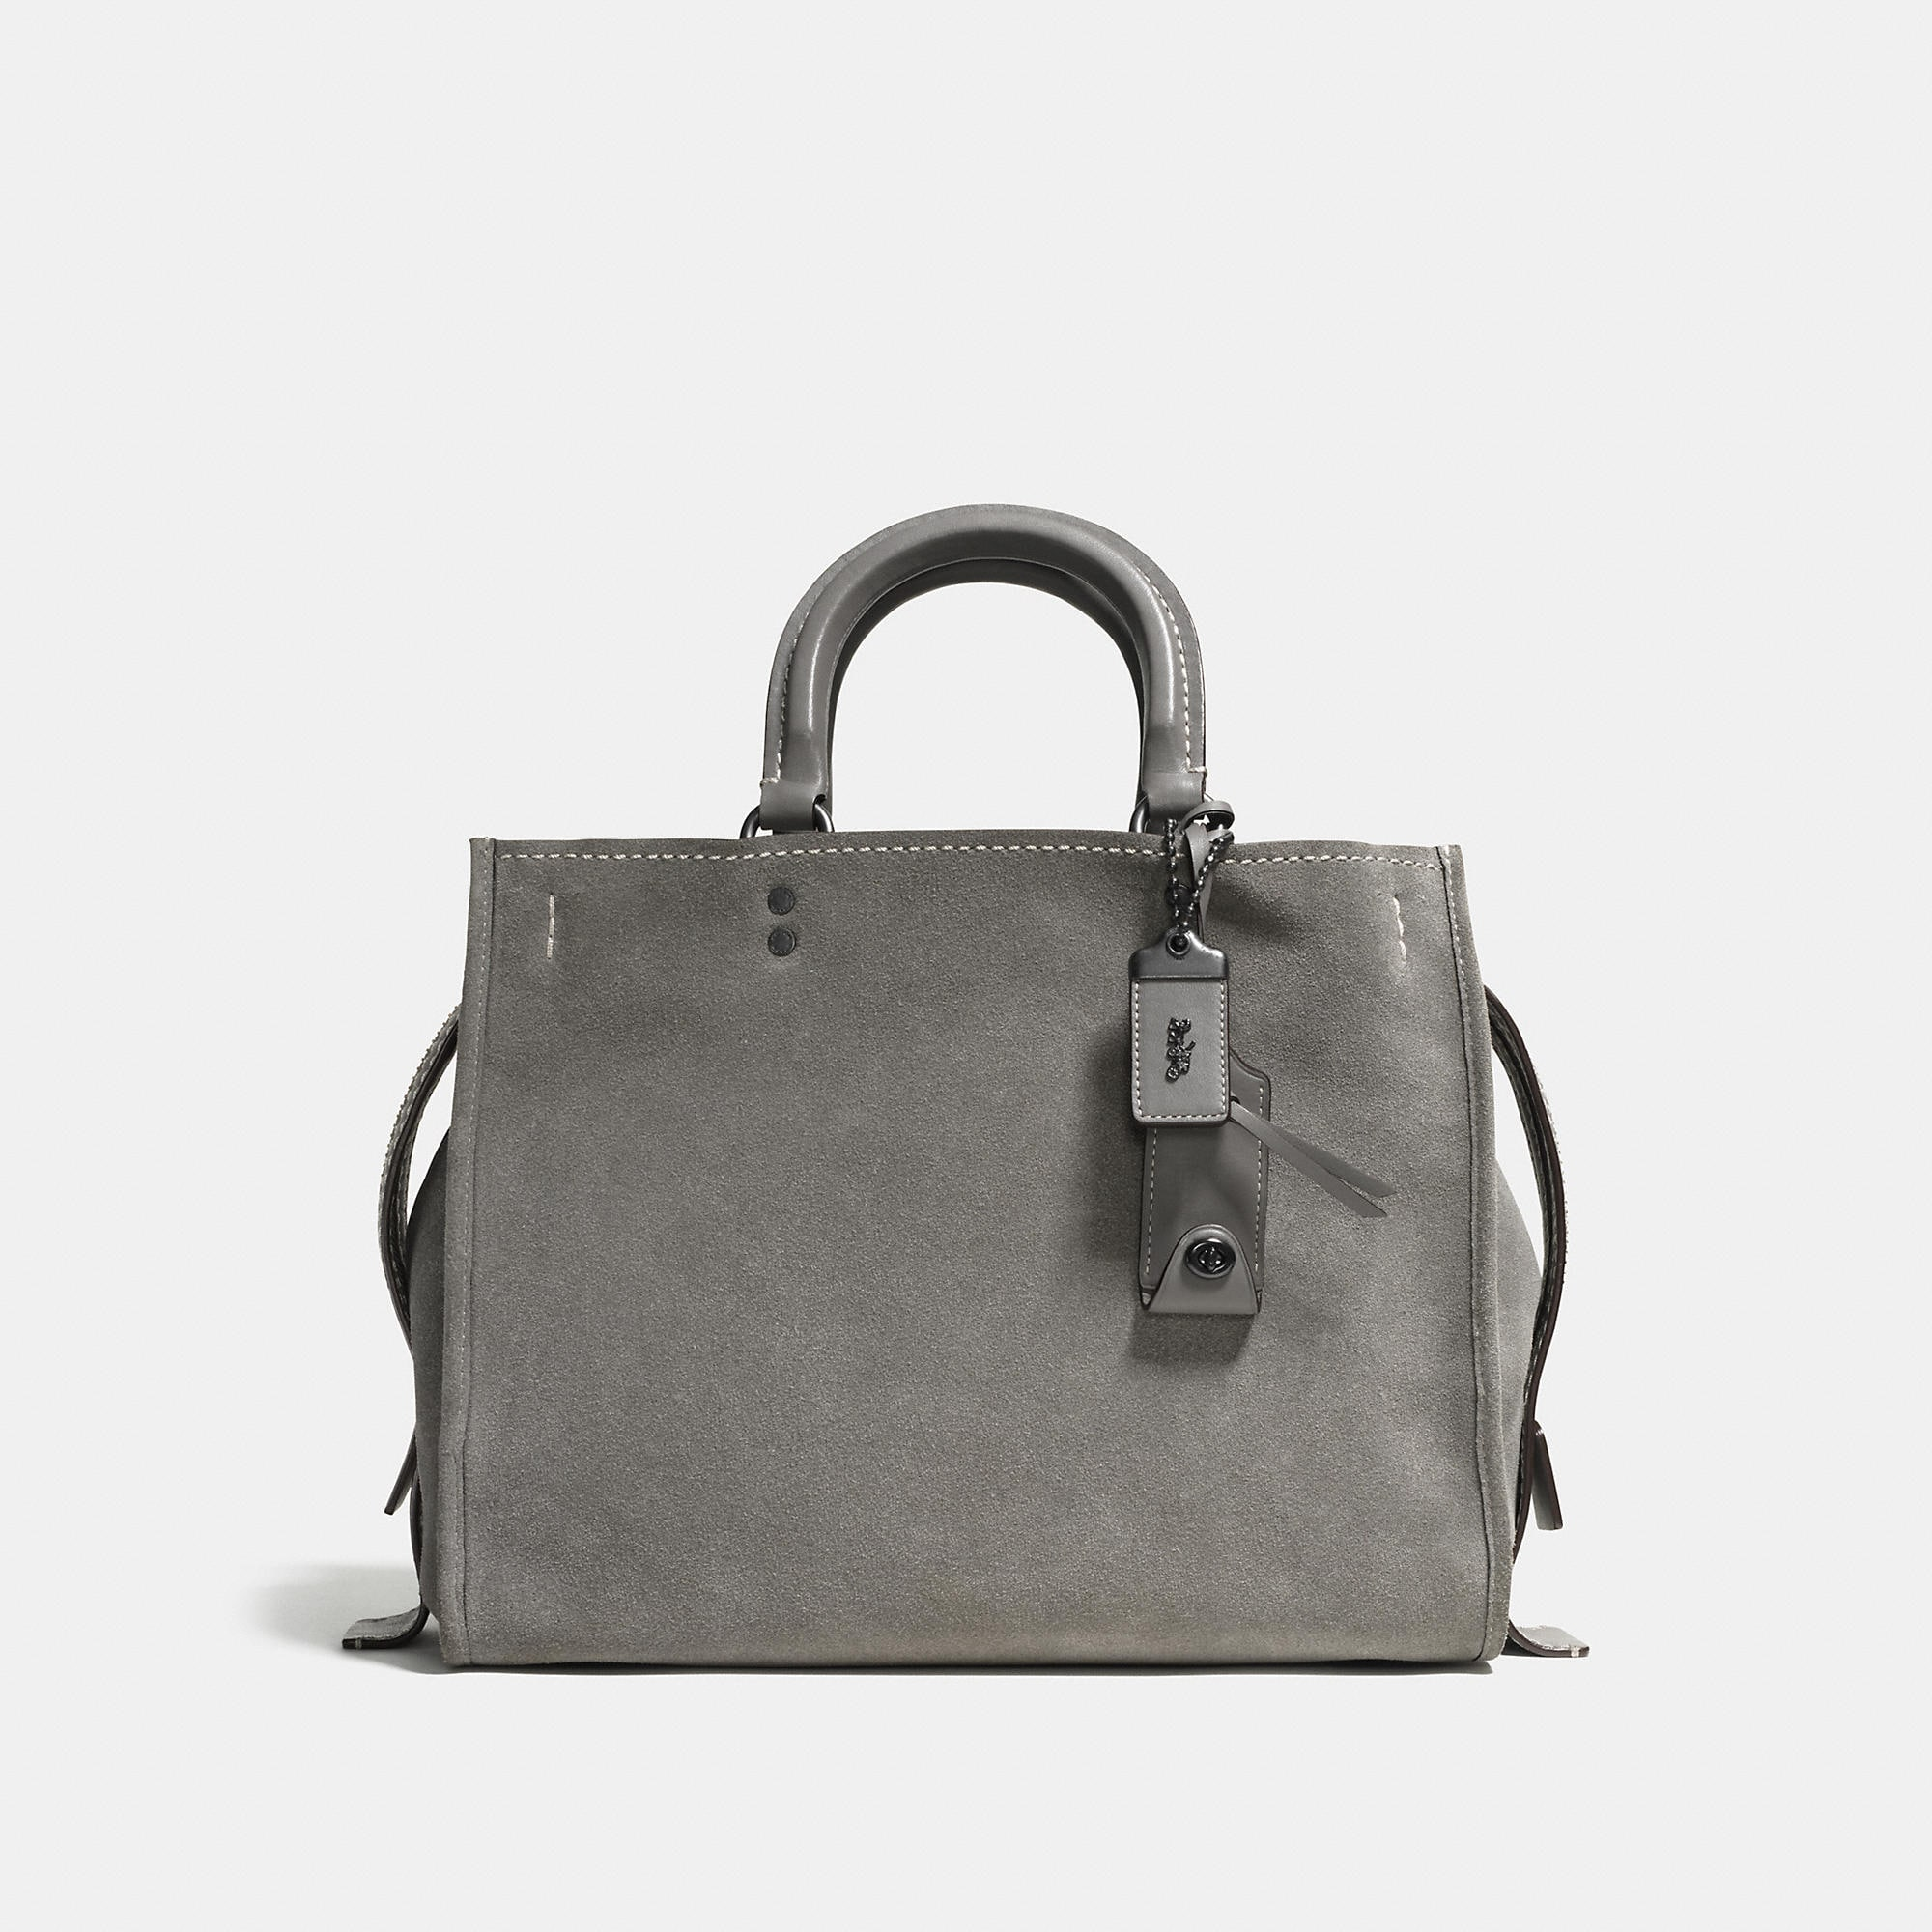 Coach 1941 Rogue Bag In Suede